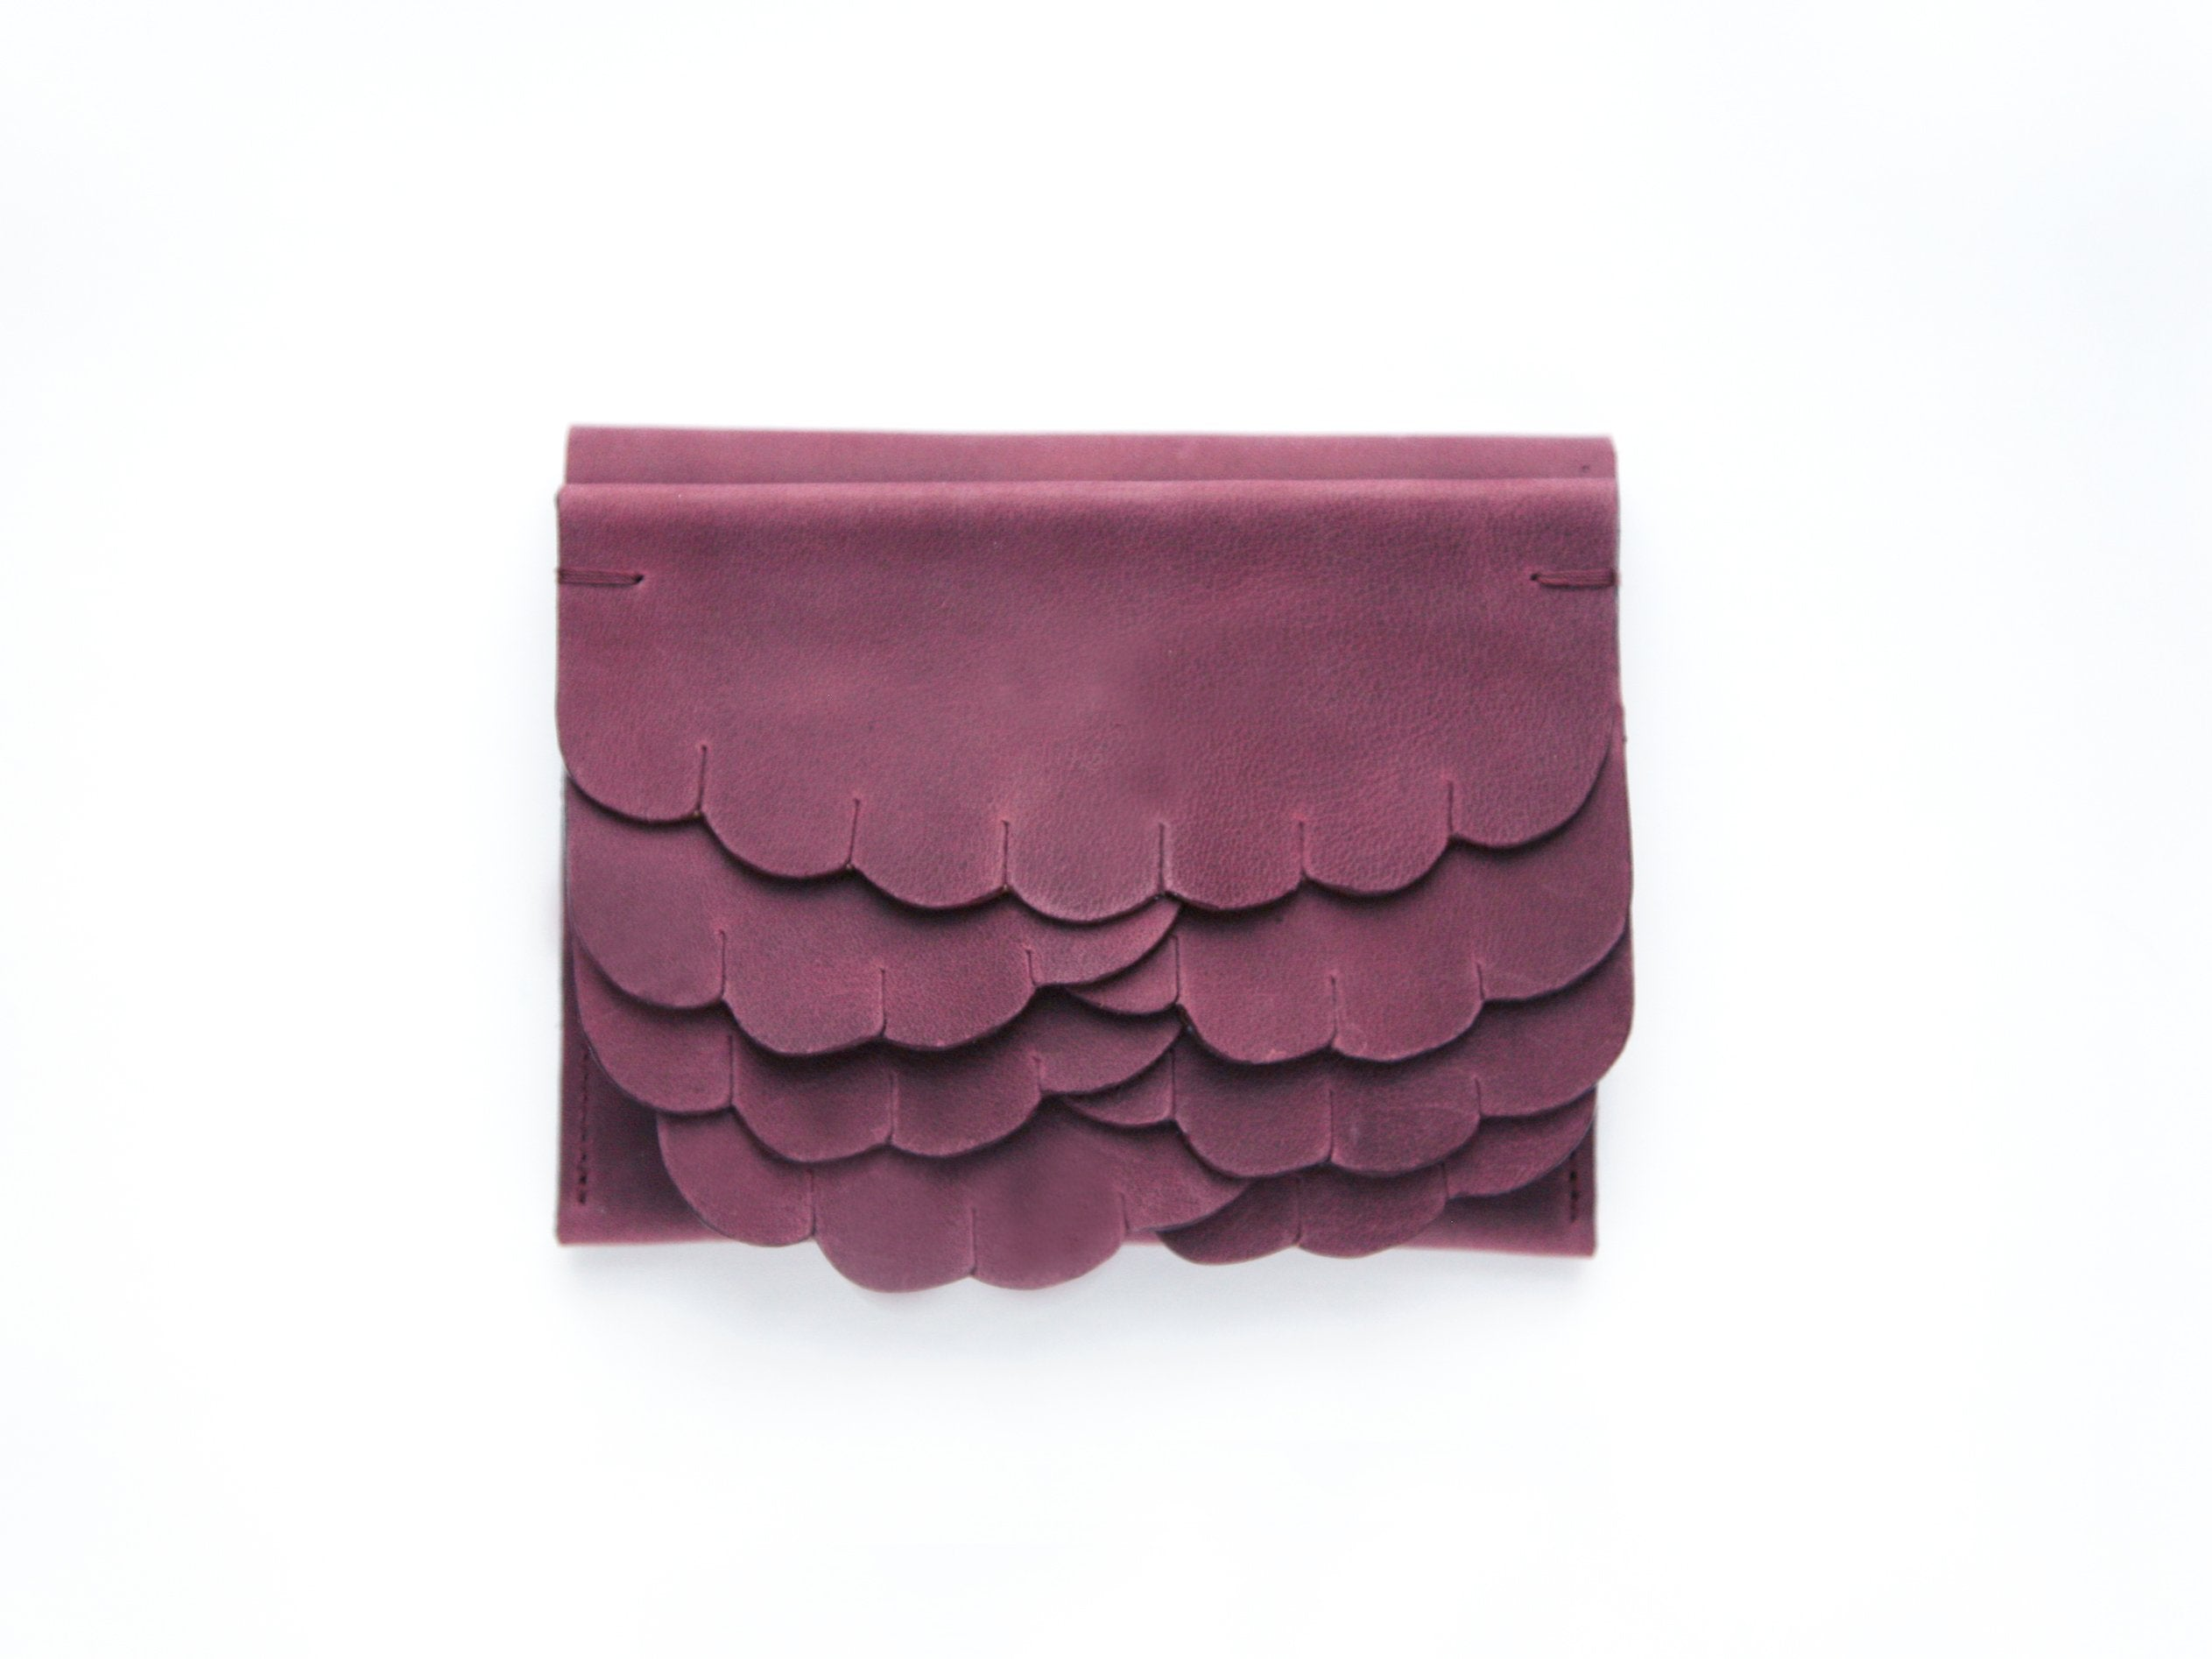 While wallet Plum